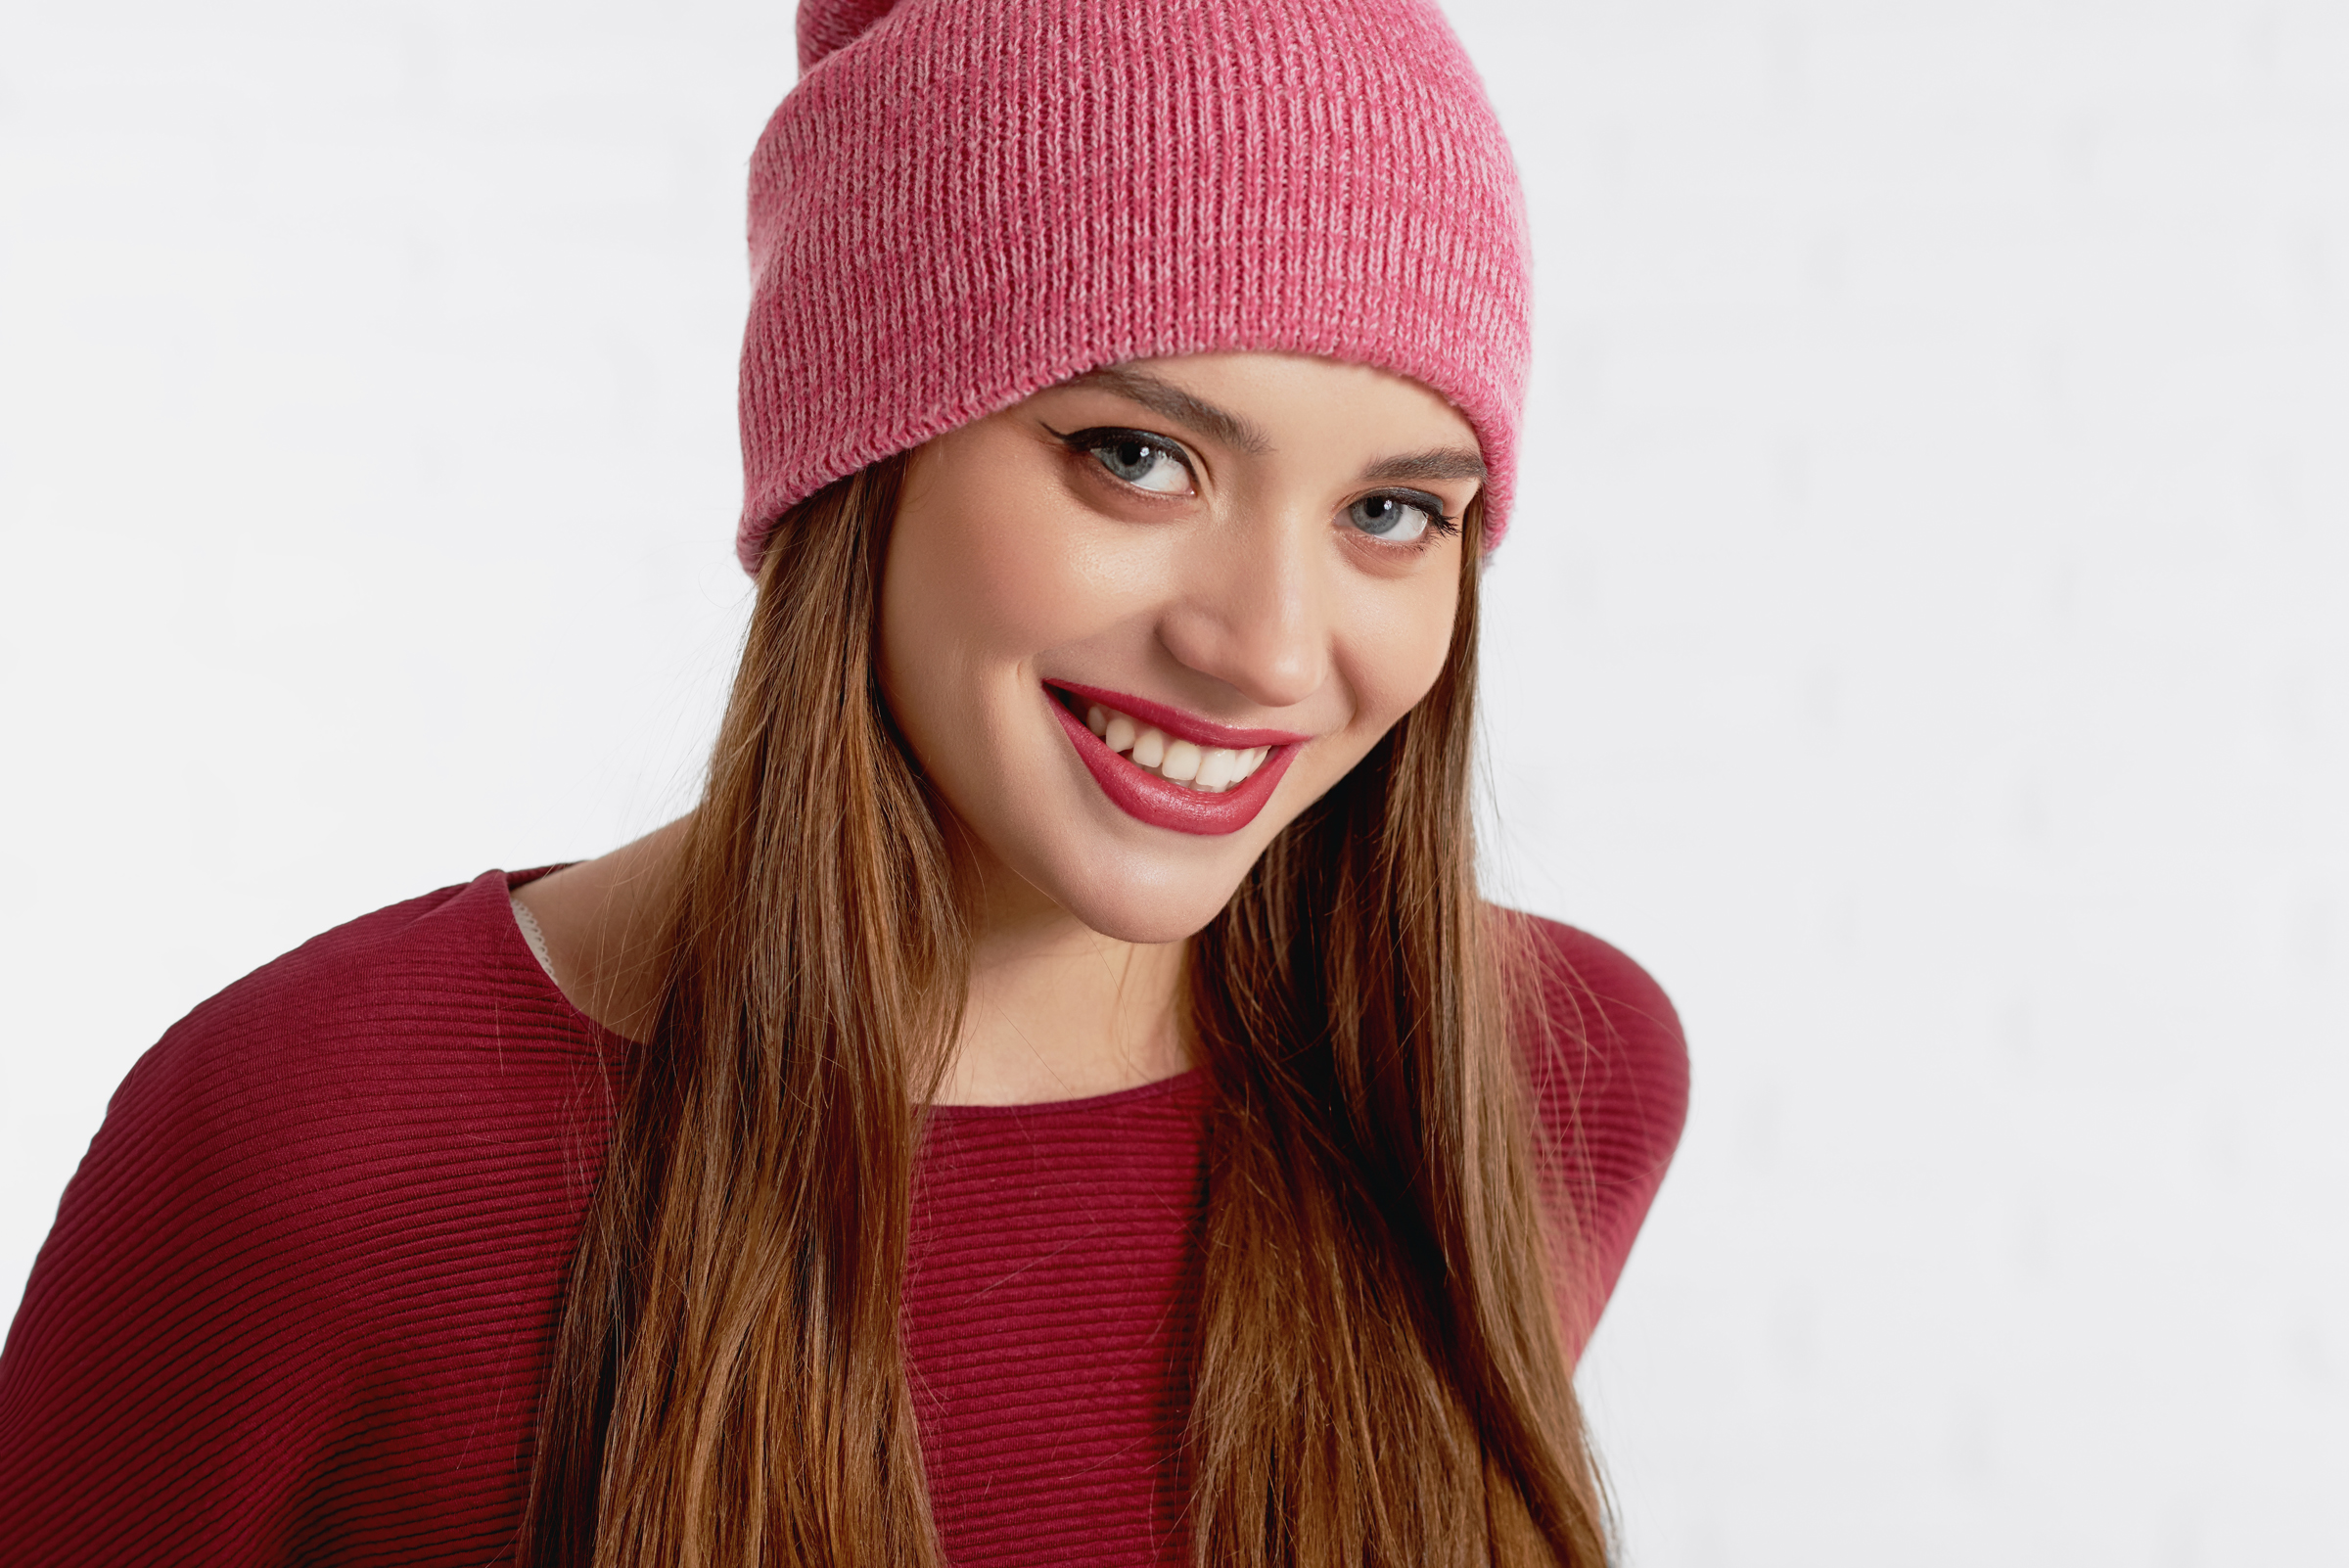 Smiling attractive female model in red hat and with make up